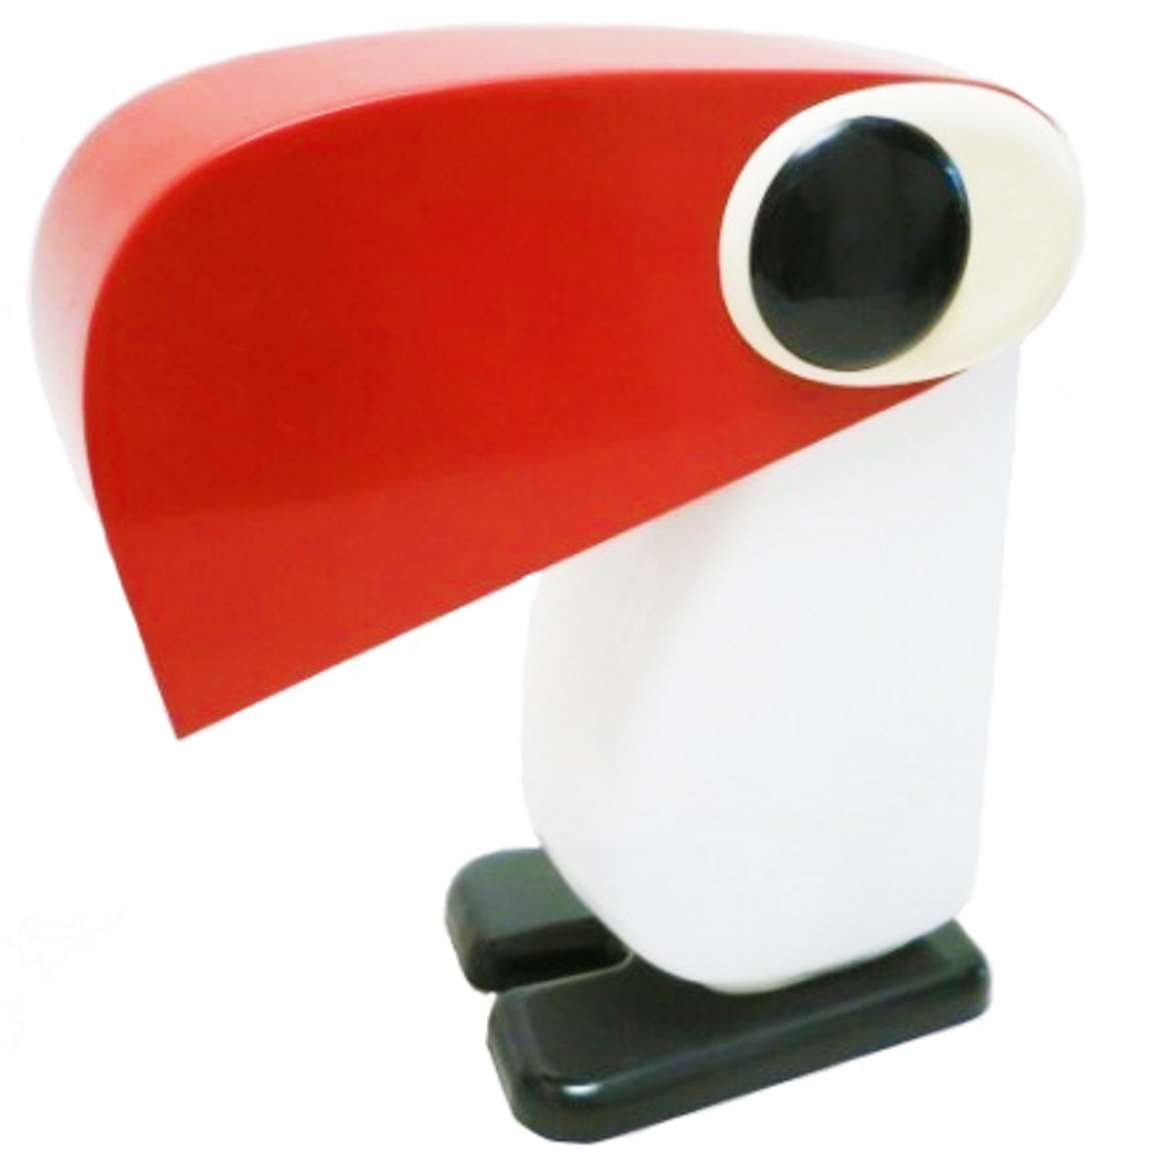 rnando Cassetta Thirza the toucan table lamp 1970 Tacman Manara Italy Empoli opal glass vintage MCM